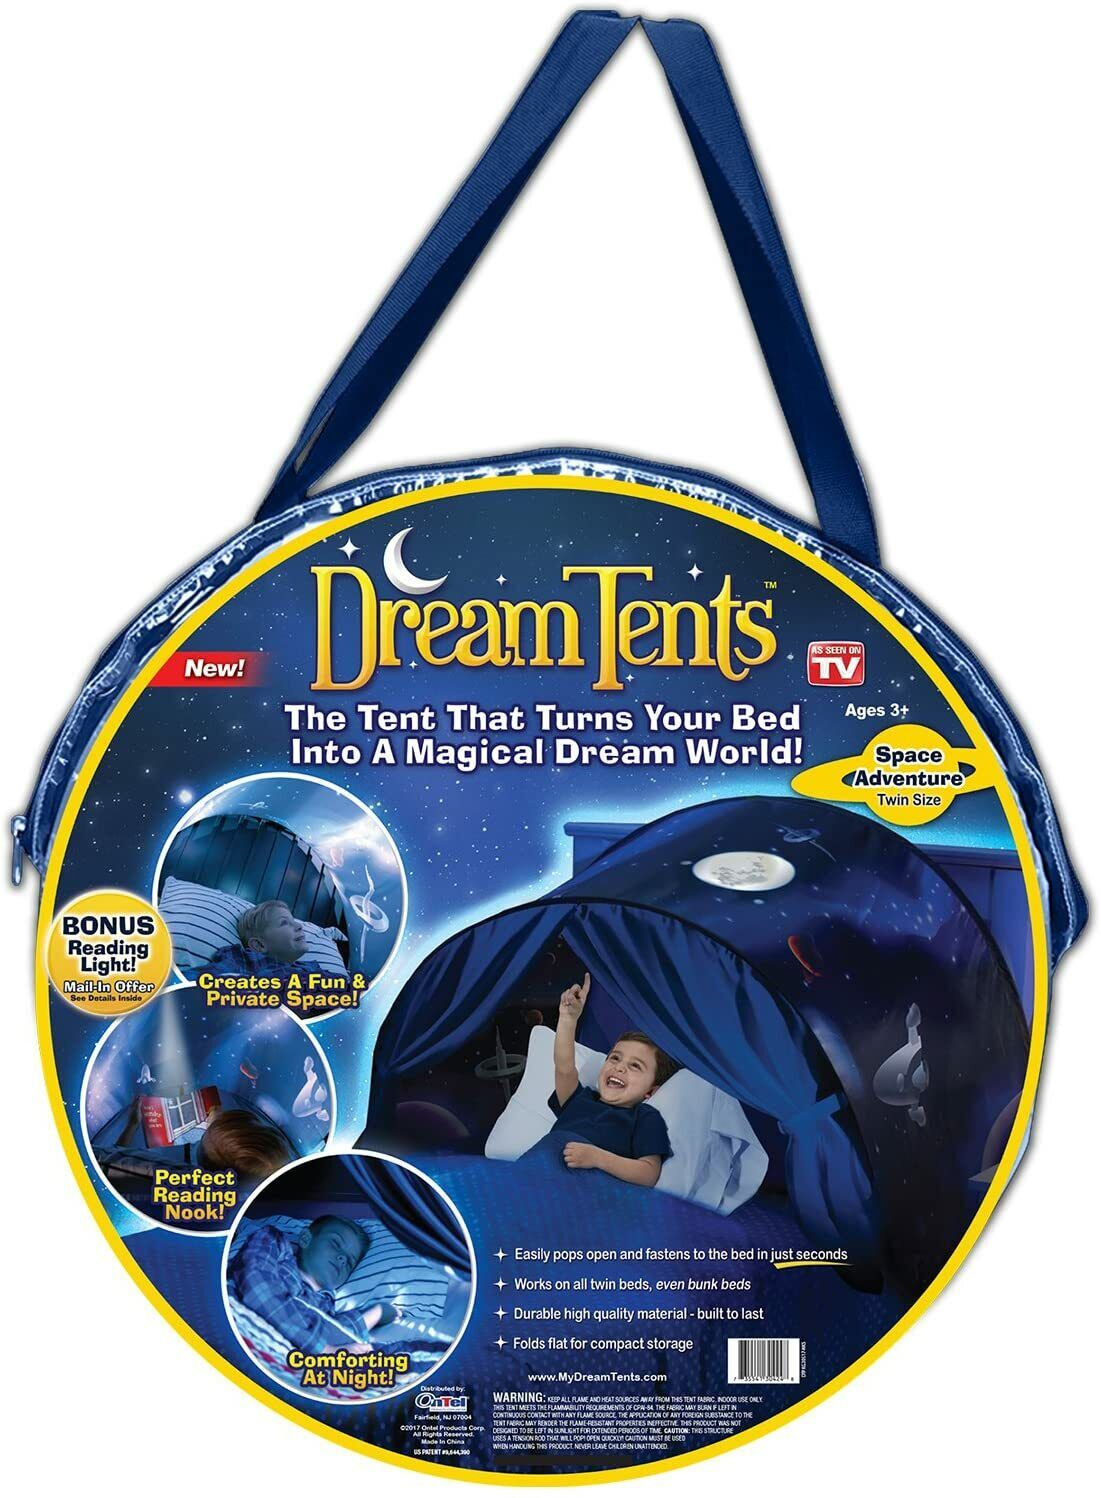 Dream Tents As Seen on TV Space Adventure Bed Tent DreamTent